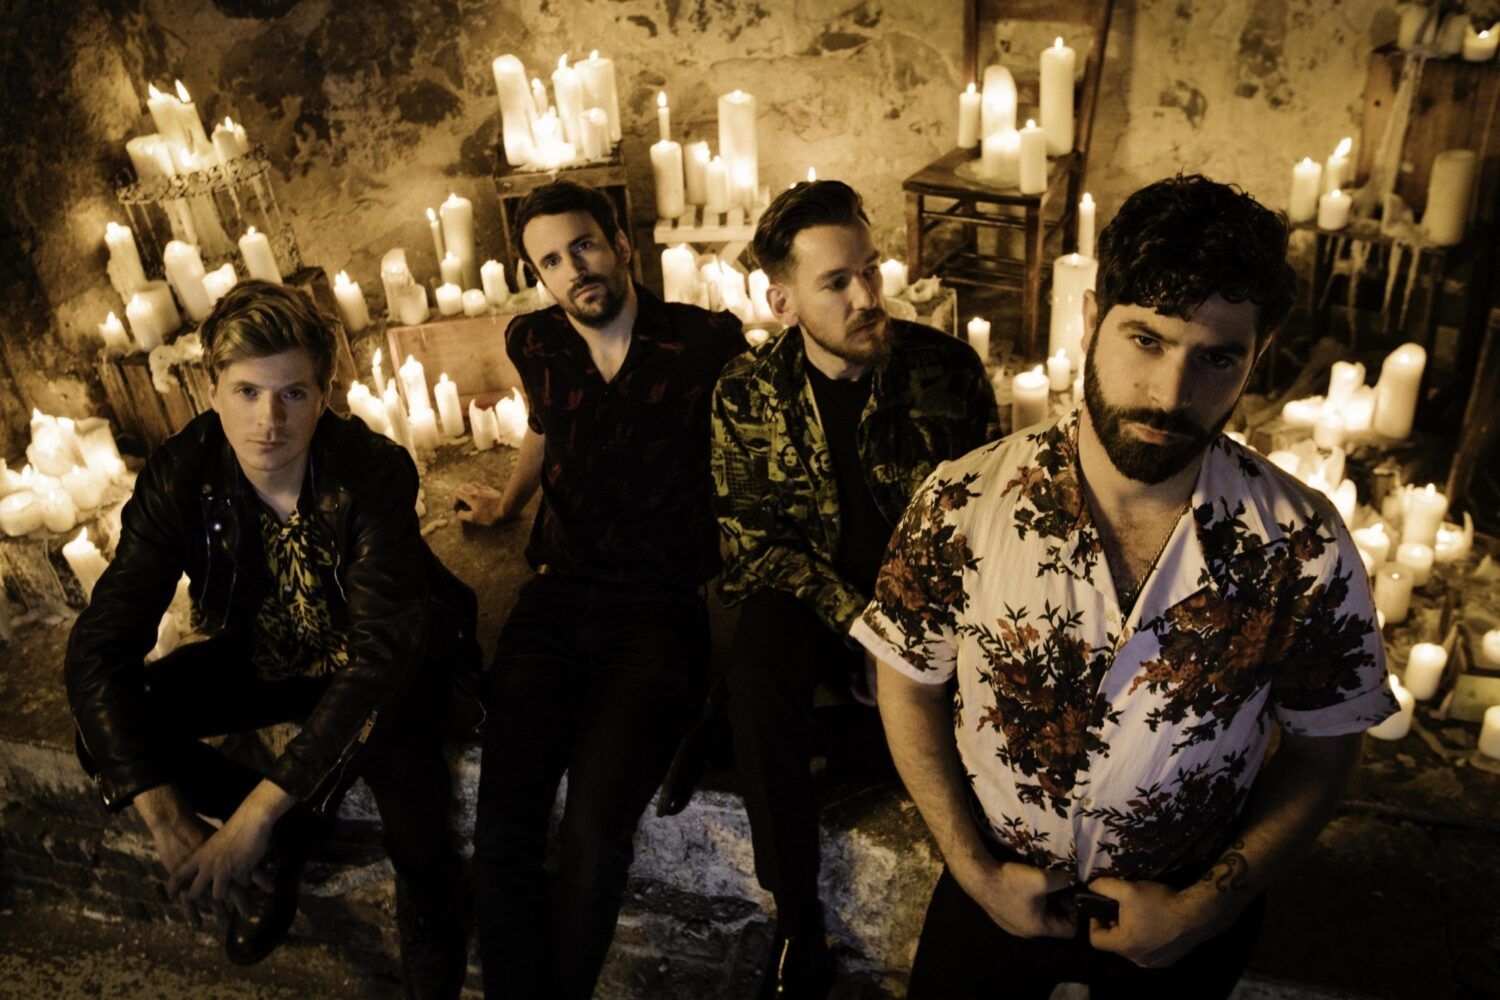 Foals unveil emotional new track 'Into The Surf'